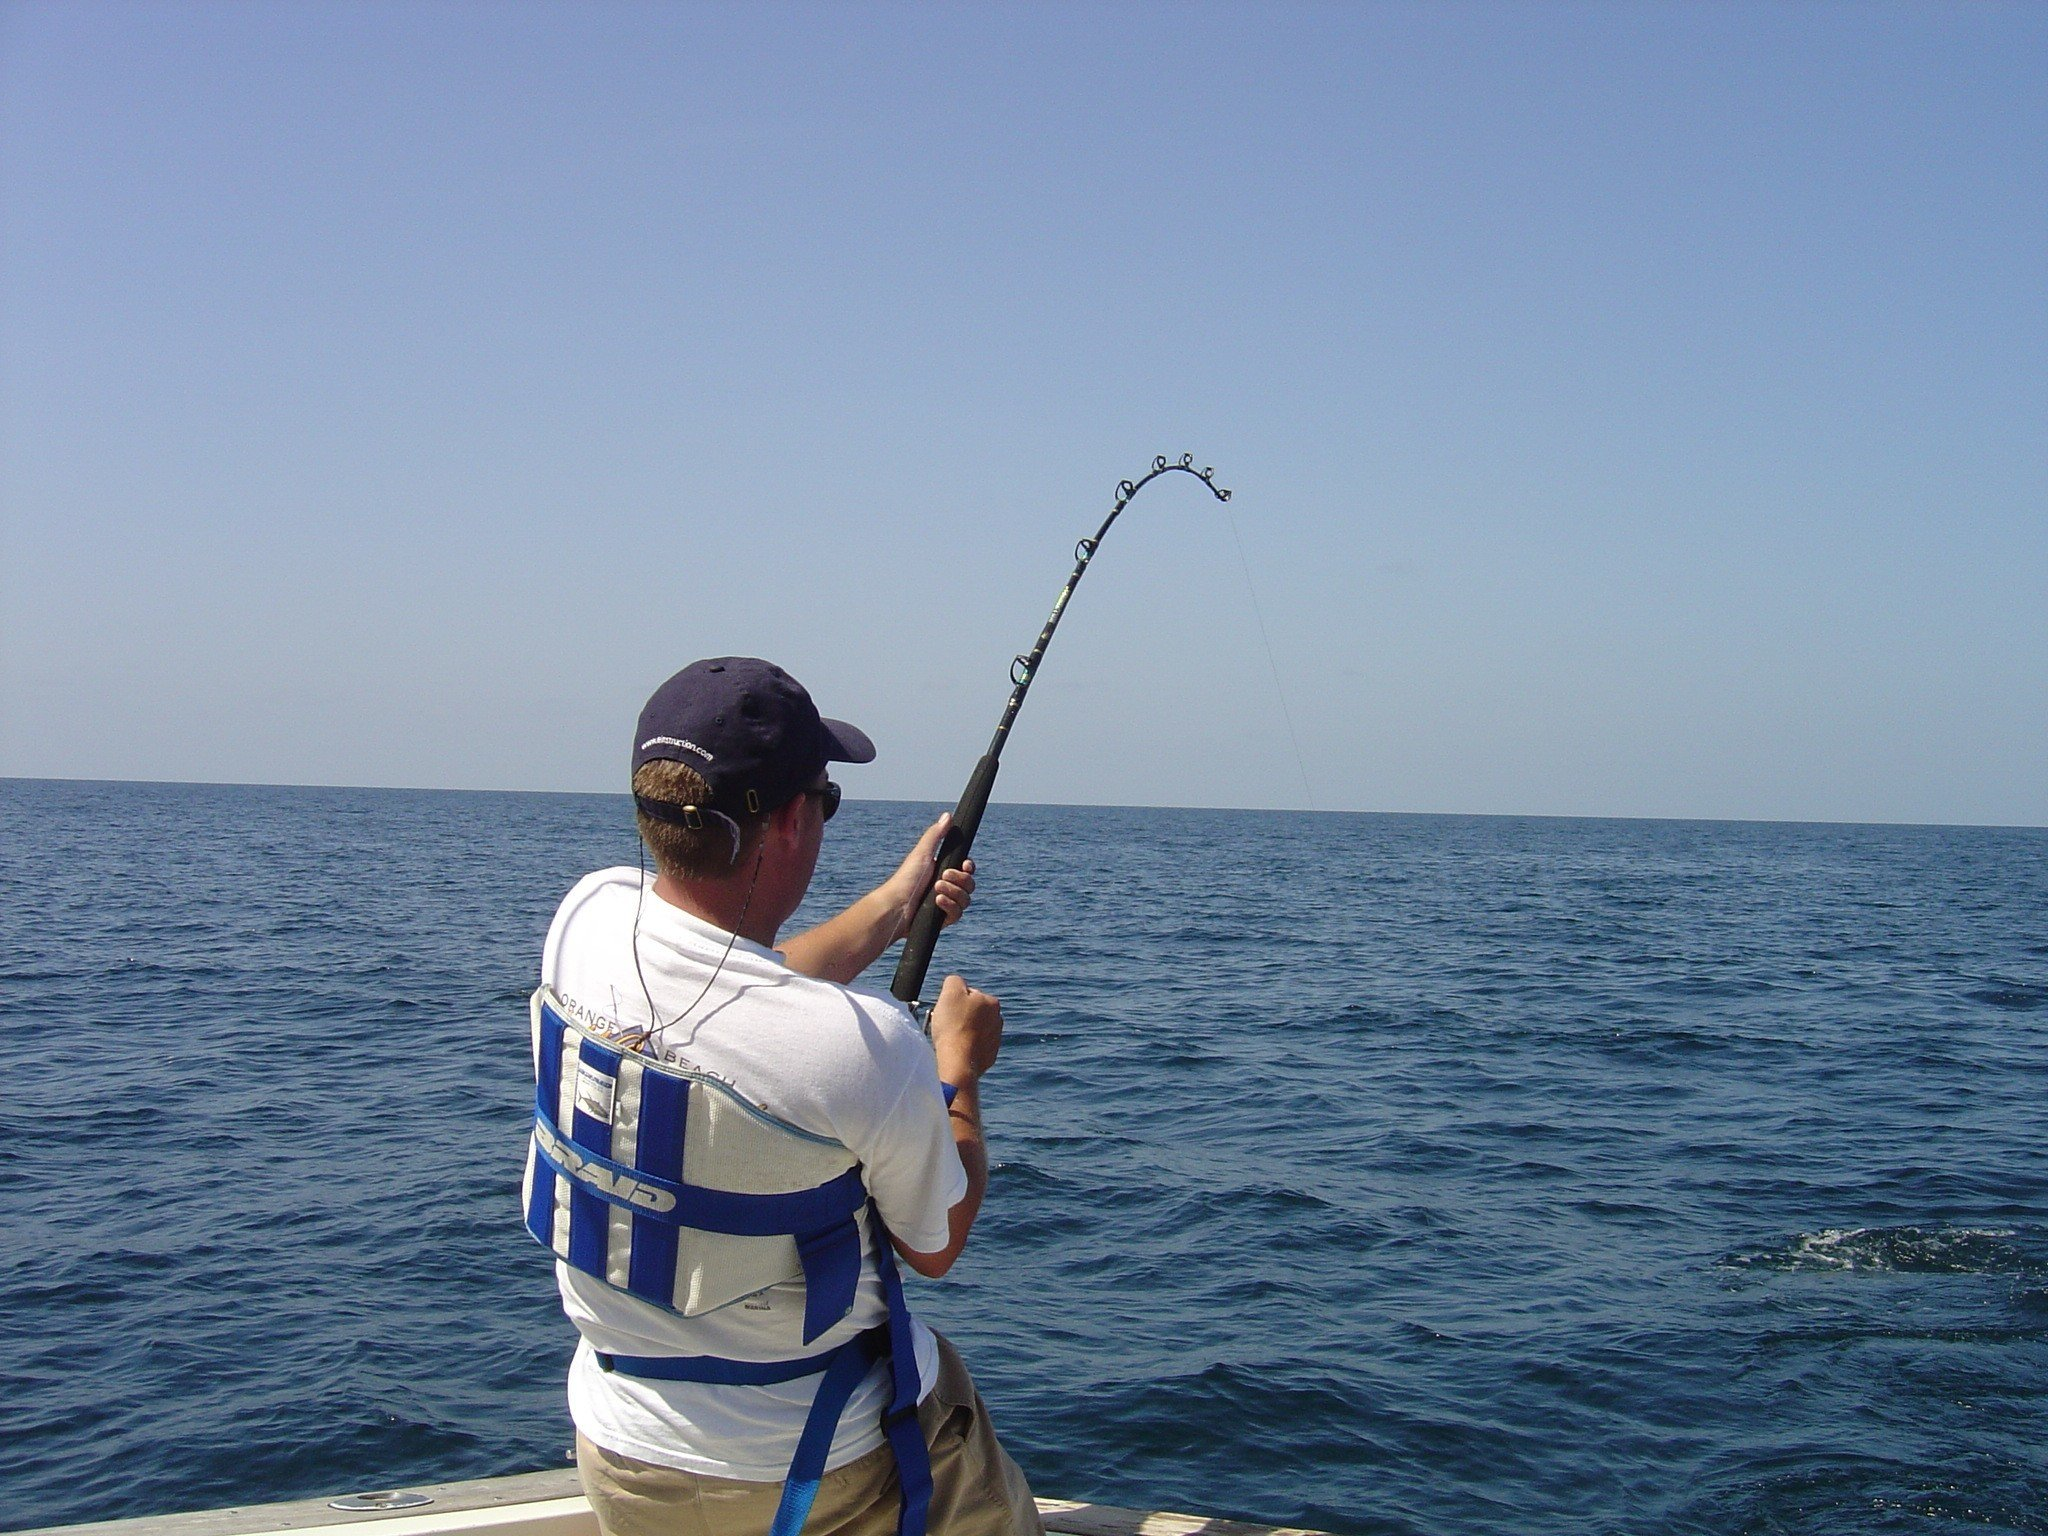 Man fishing with an offshore fishing rod wearing a fighting belt.